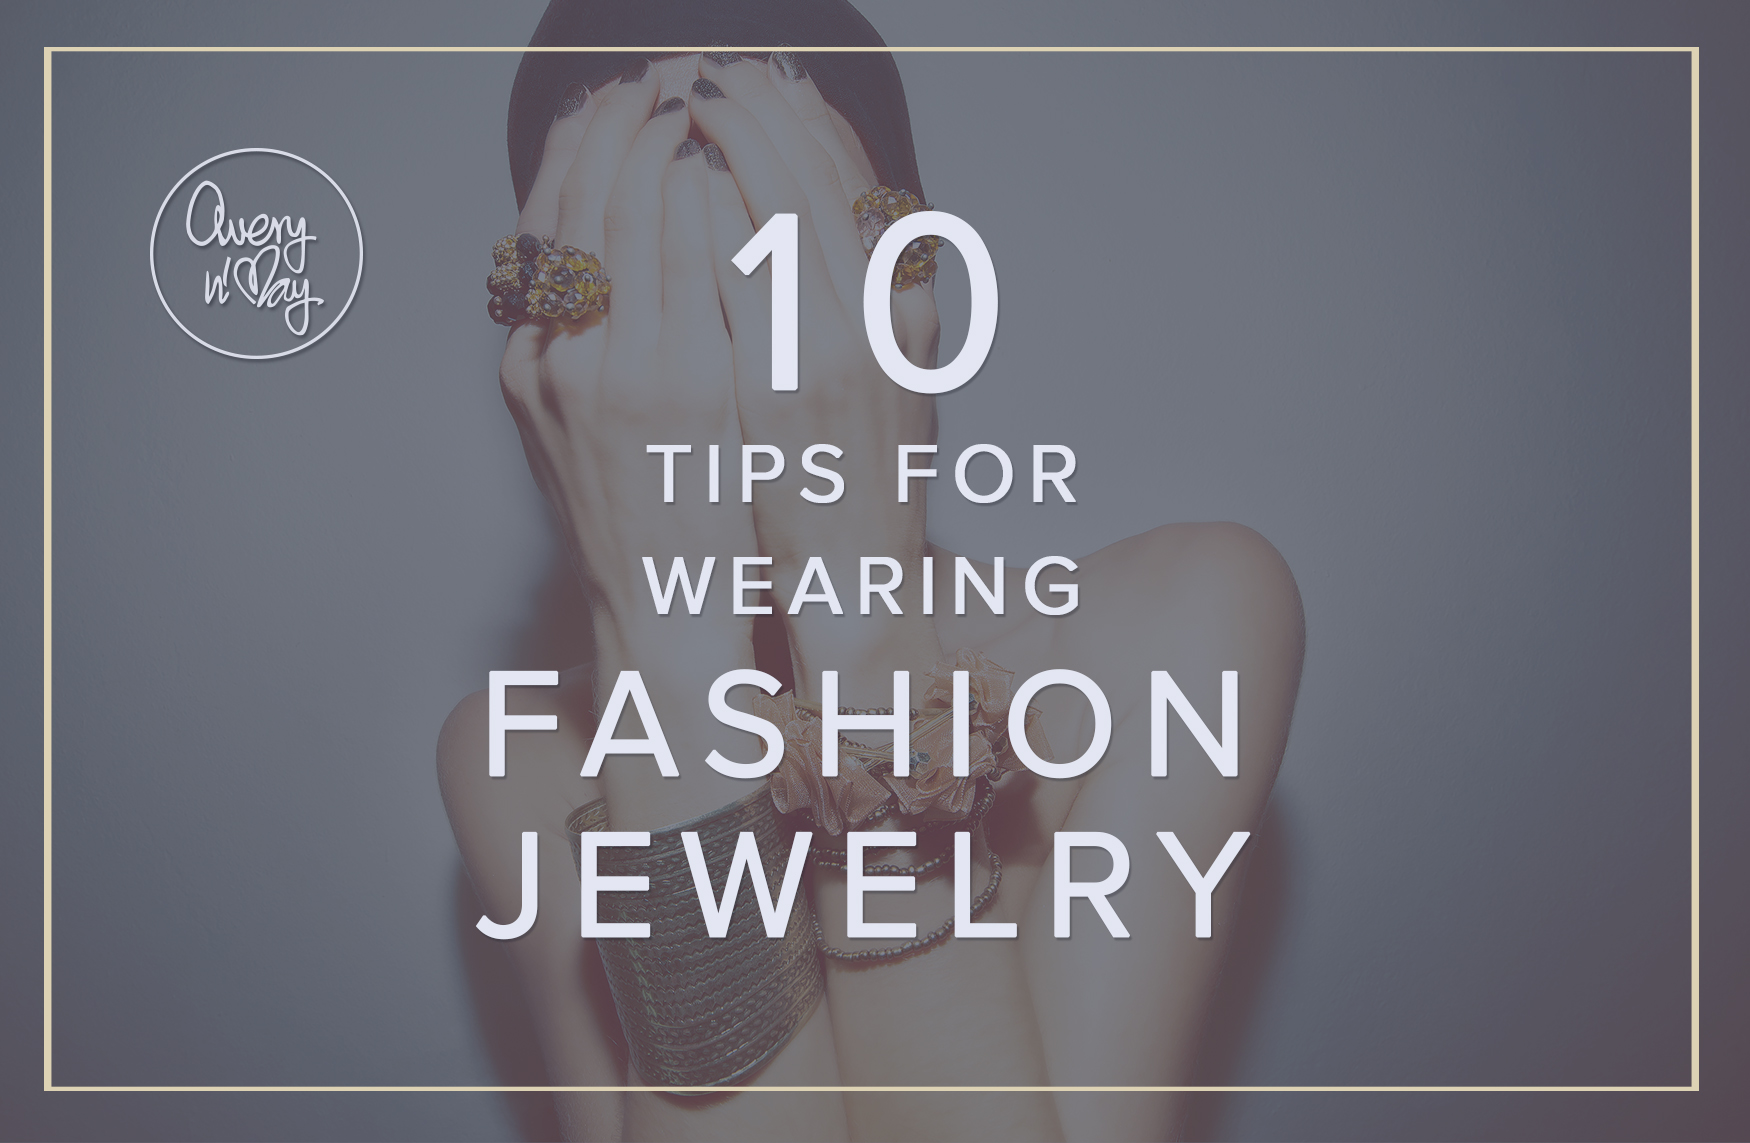 10 Tips for Wearing Fashion Jewelry